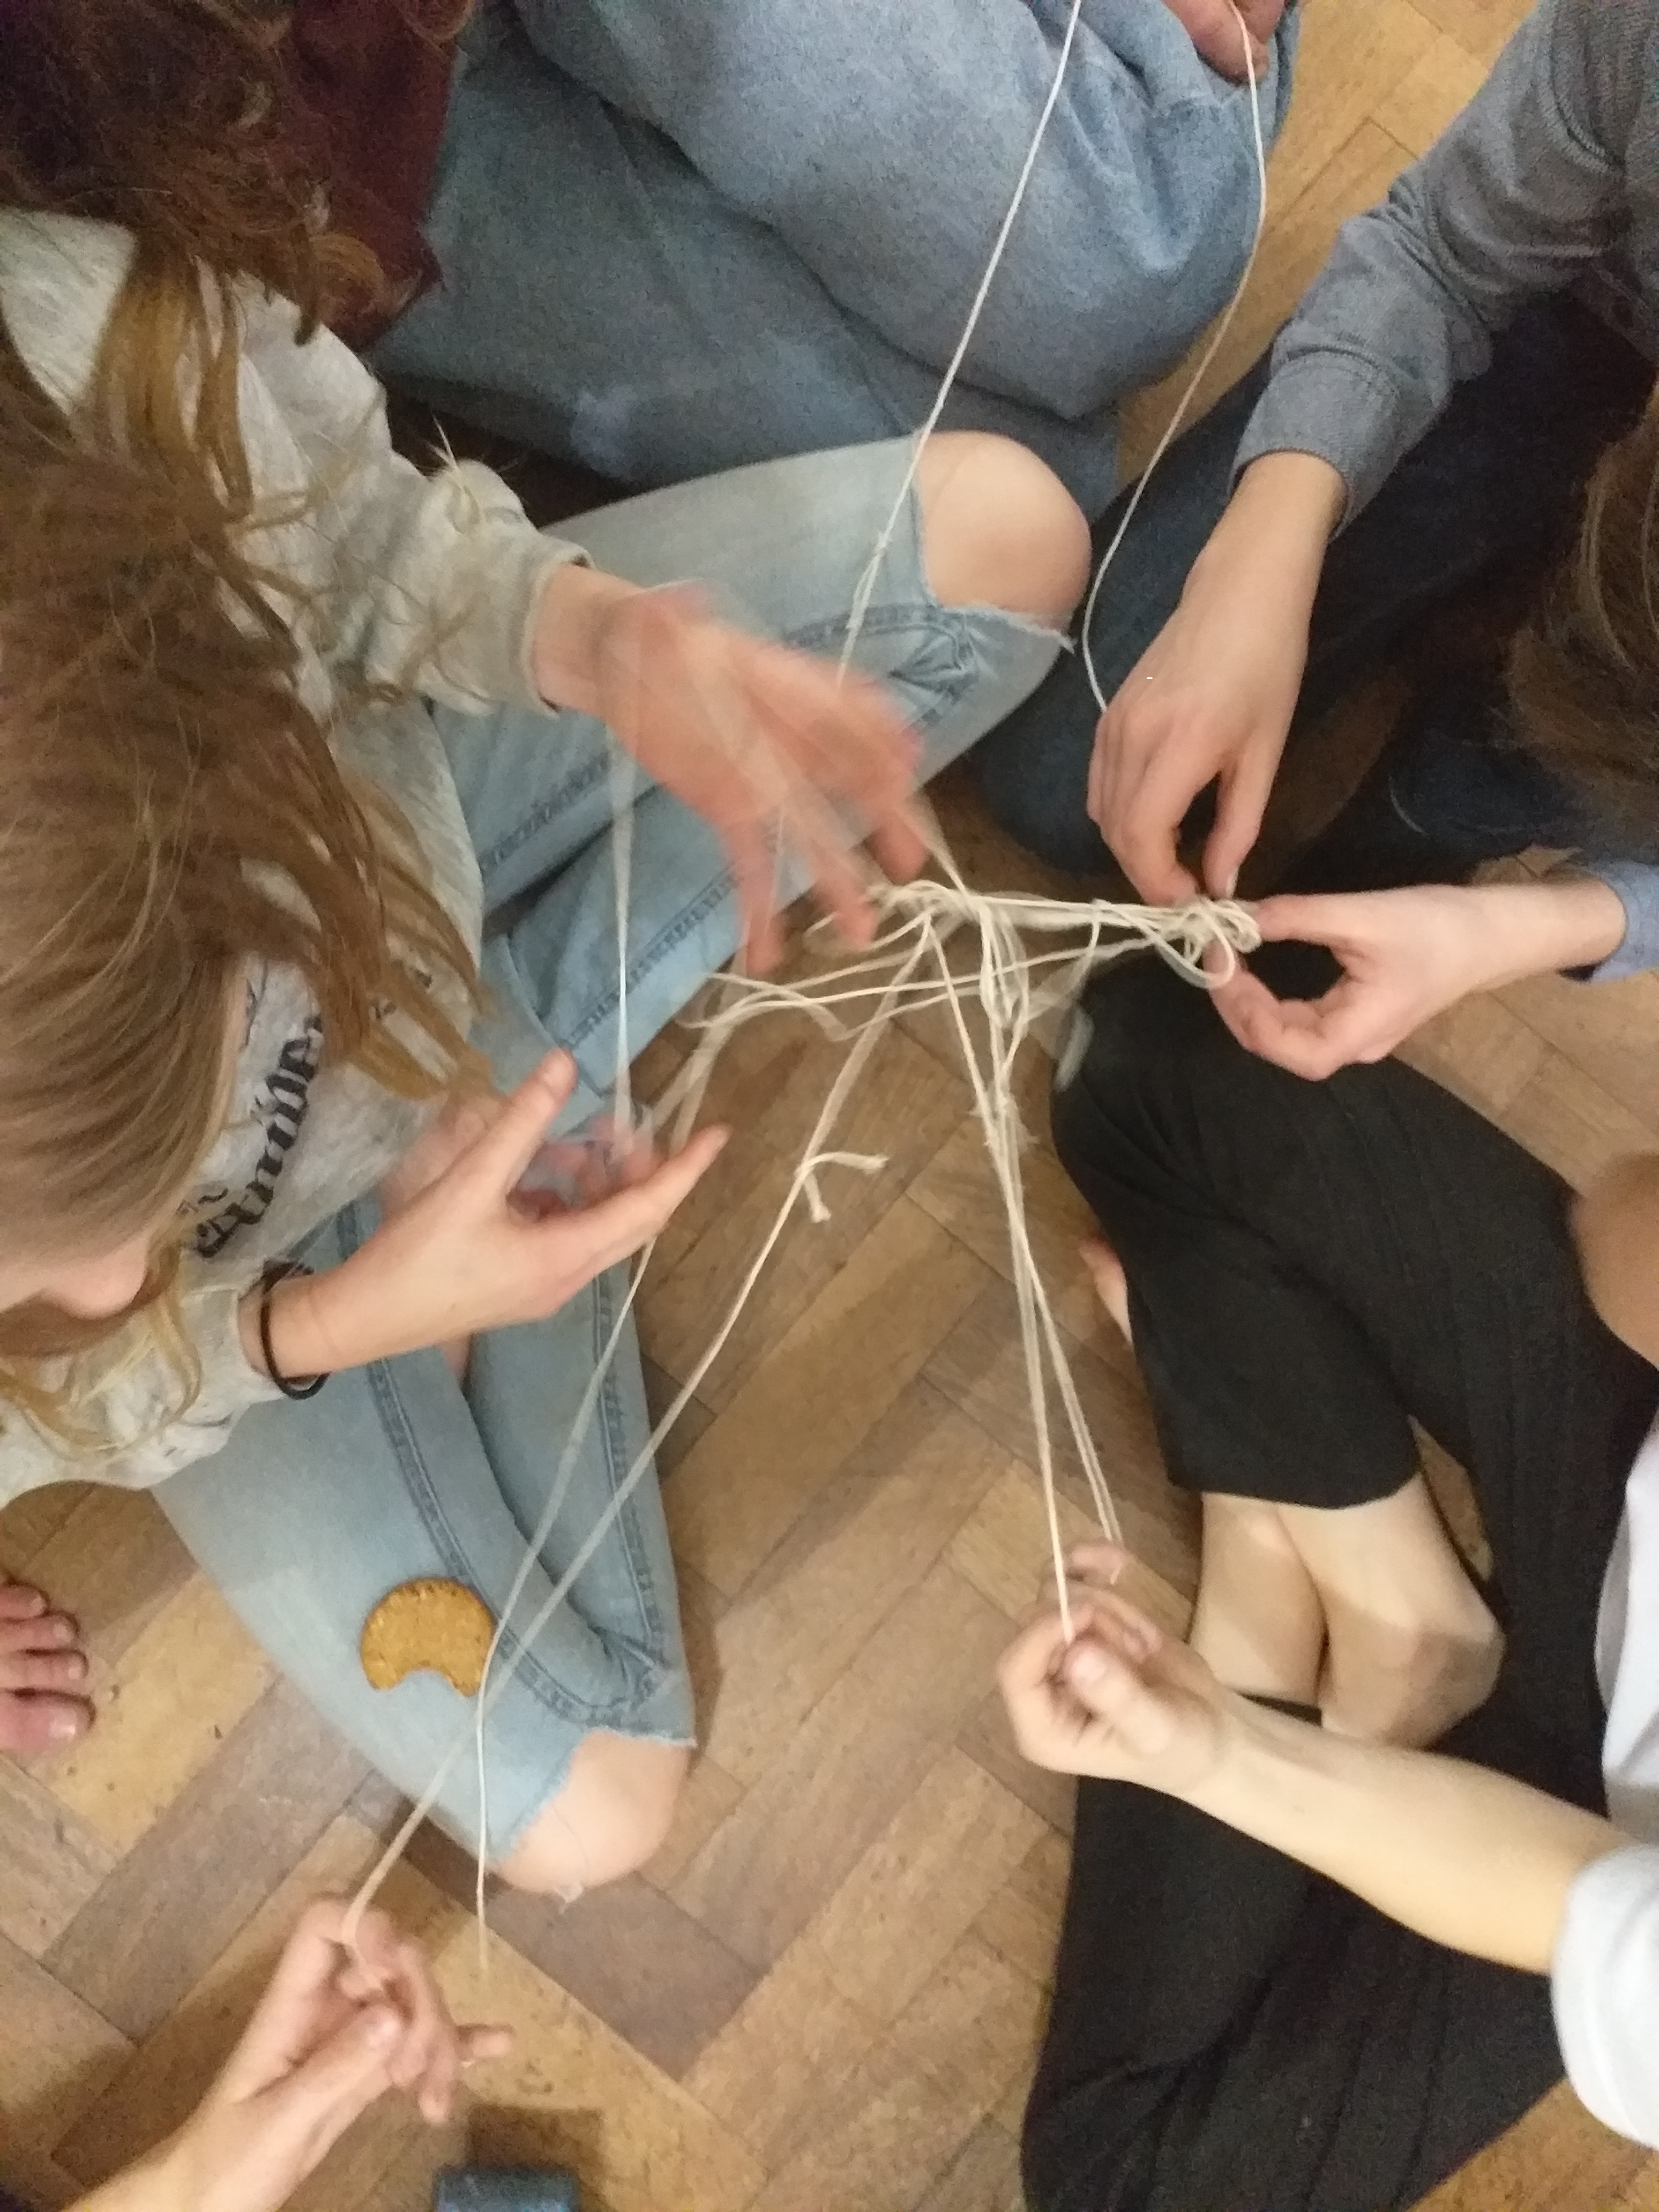 young people playing a game with string